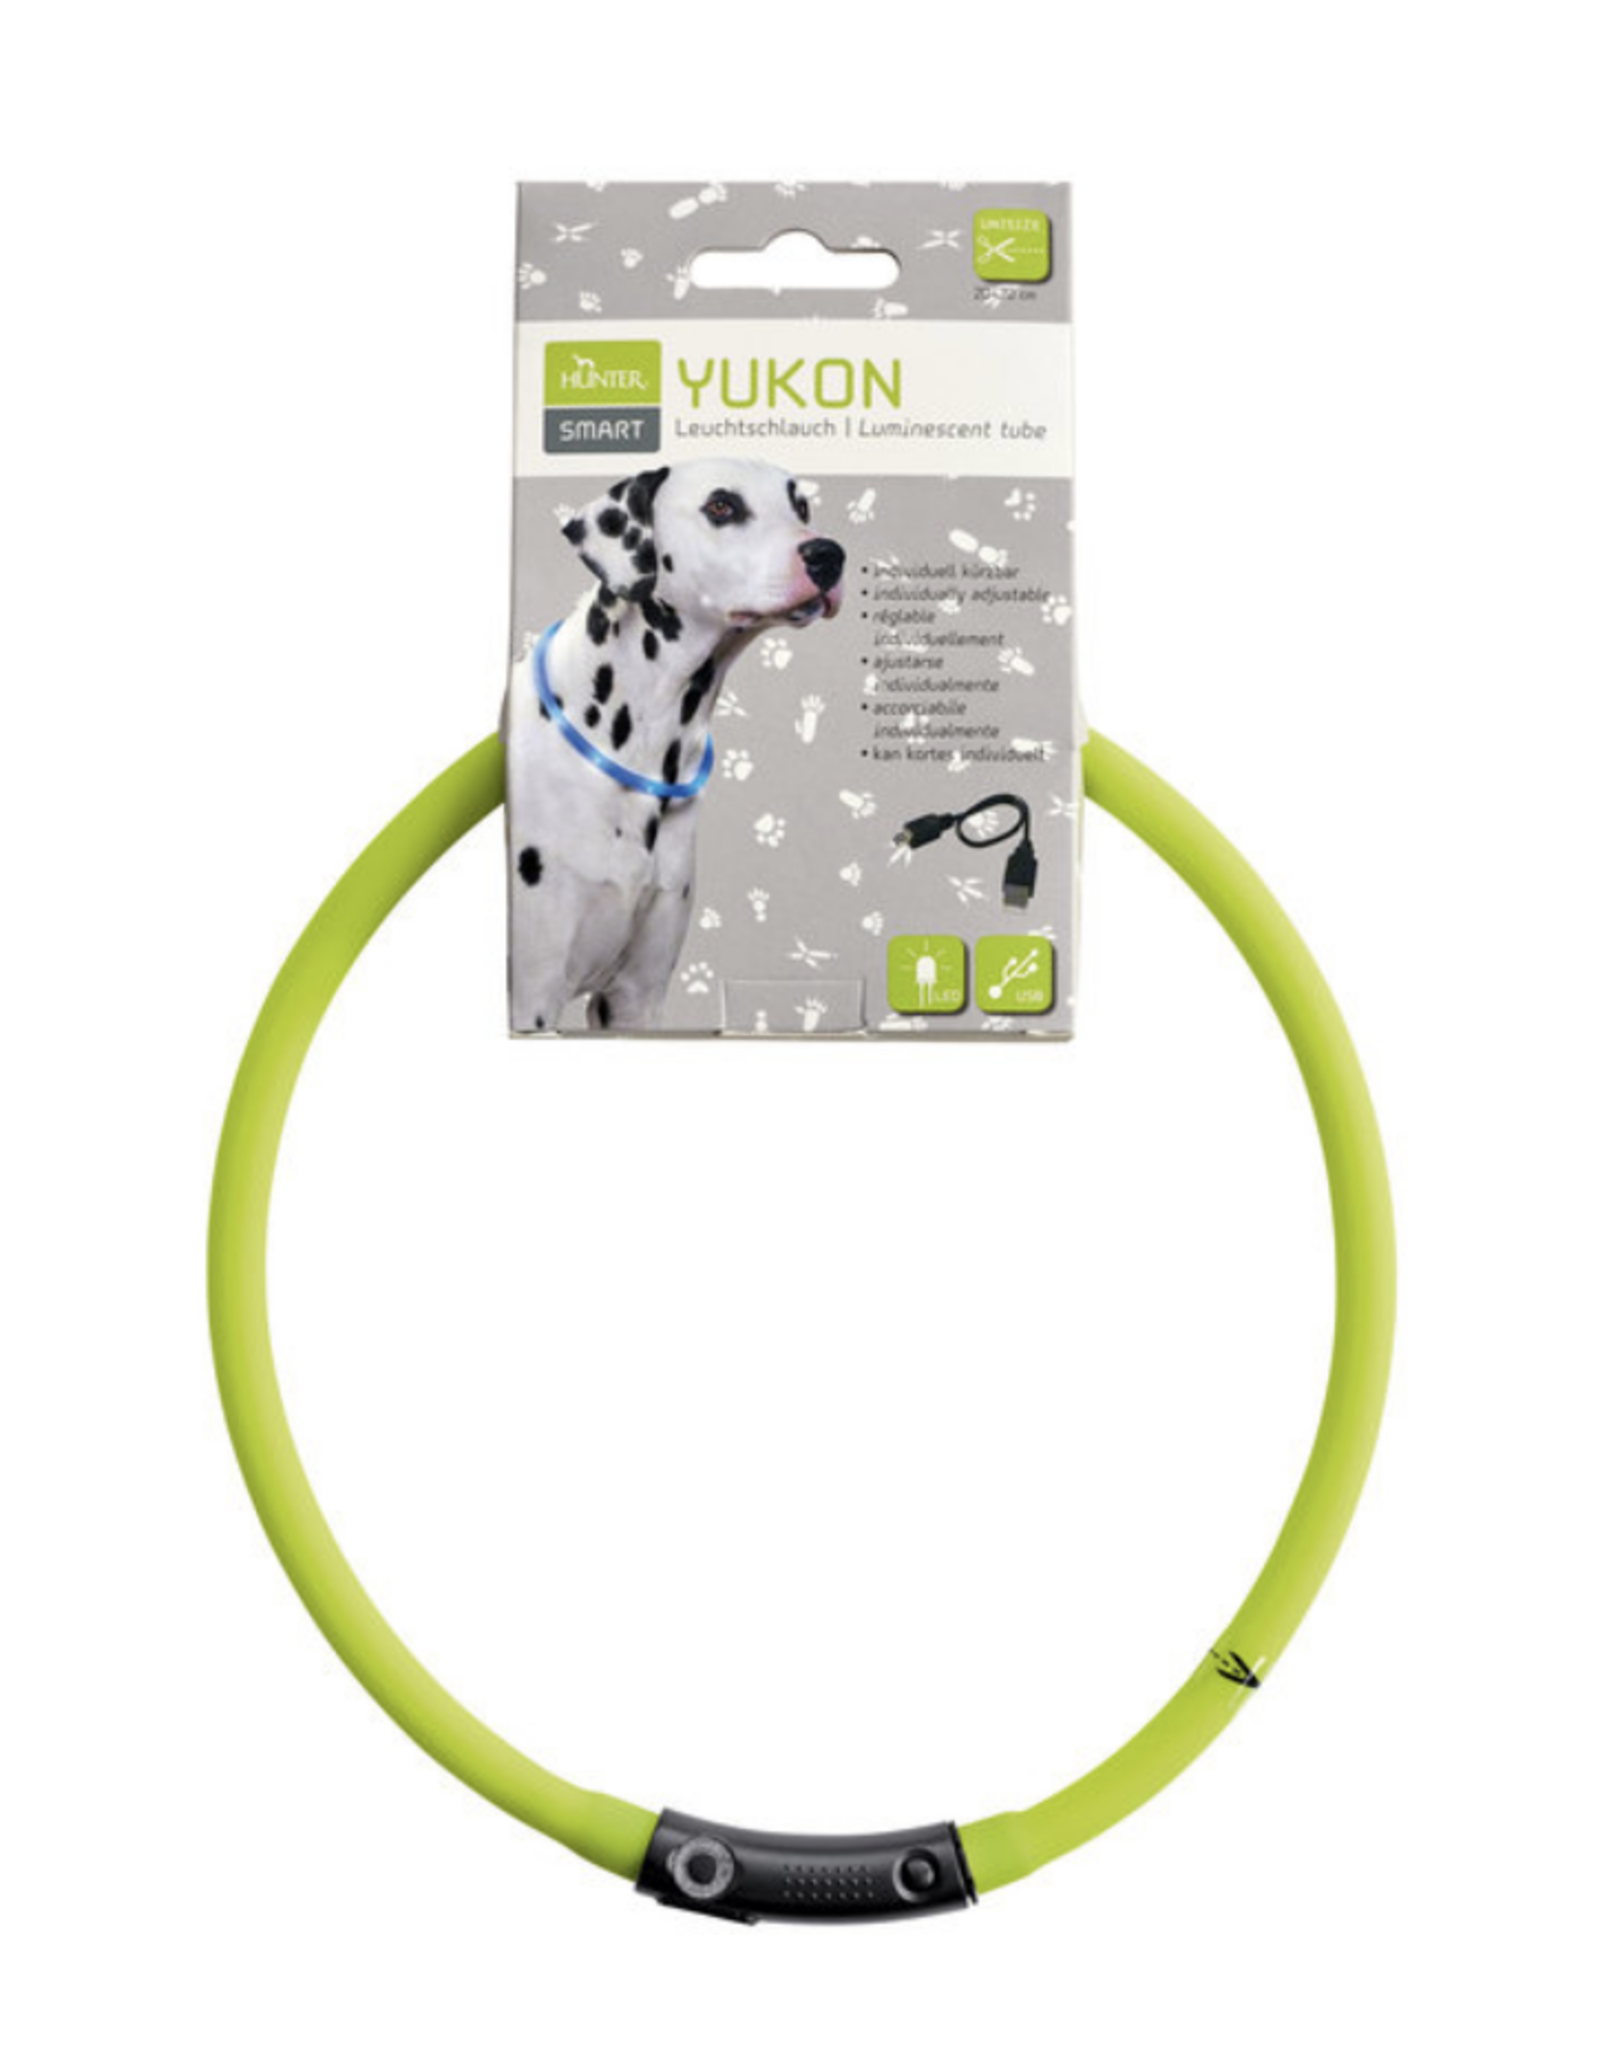 Hunter Hunter - LED Silicone Liminescent Tube Yukon - Lime